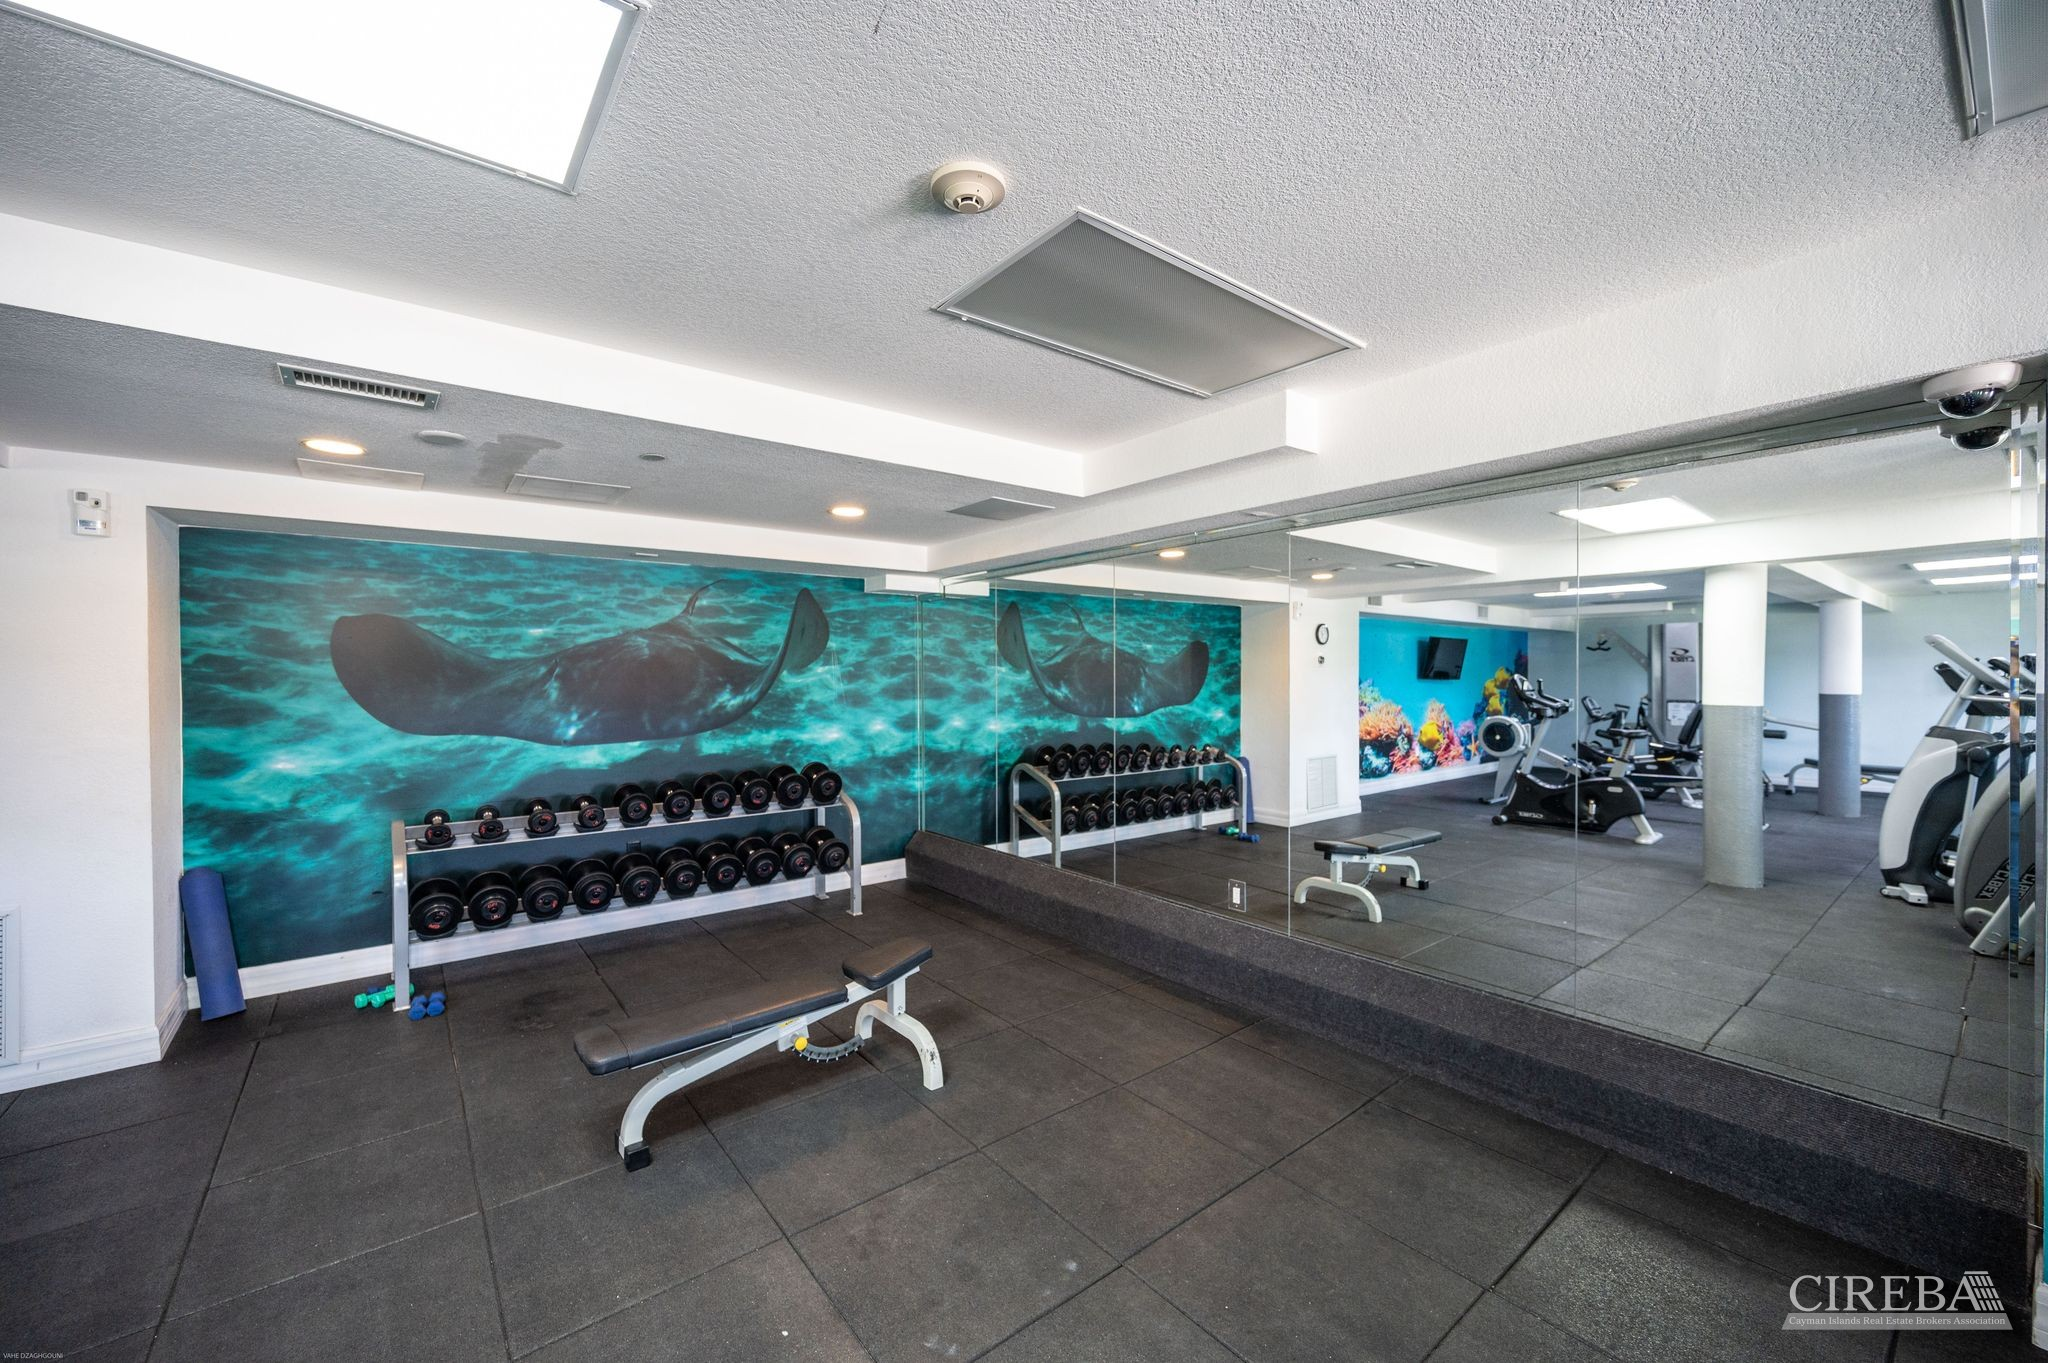 Fitness center equipped  with Sauna, free weights,  cardio  machines, and so much more. Located directly below the condo beside the spa.